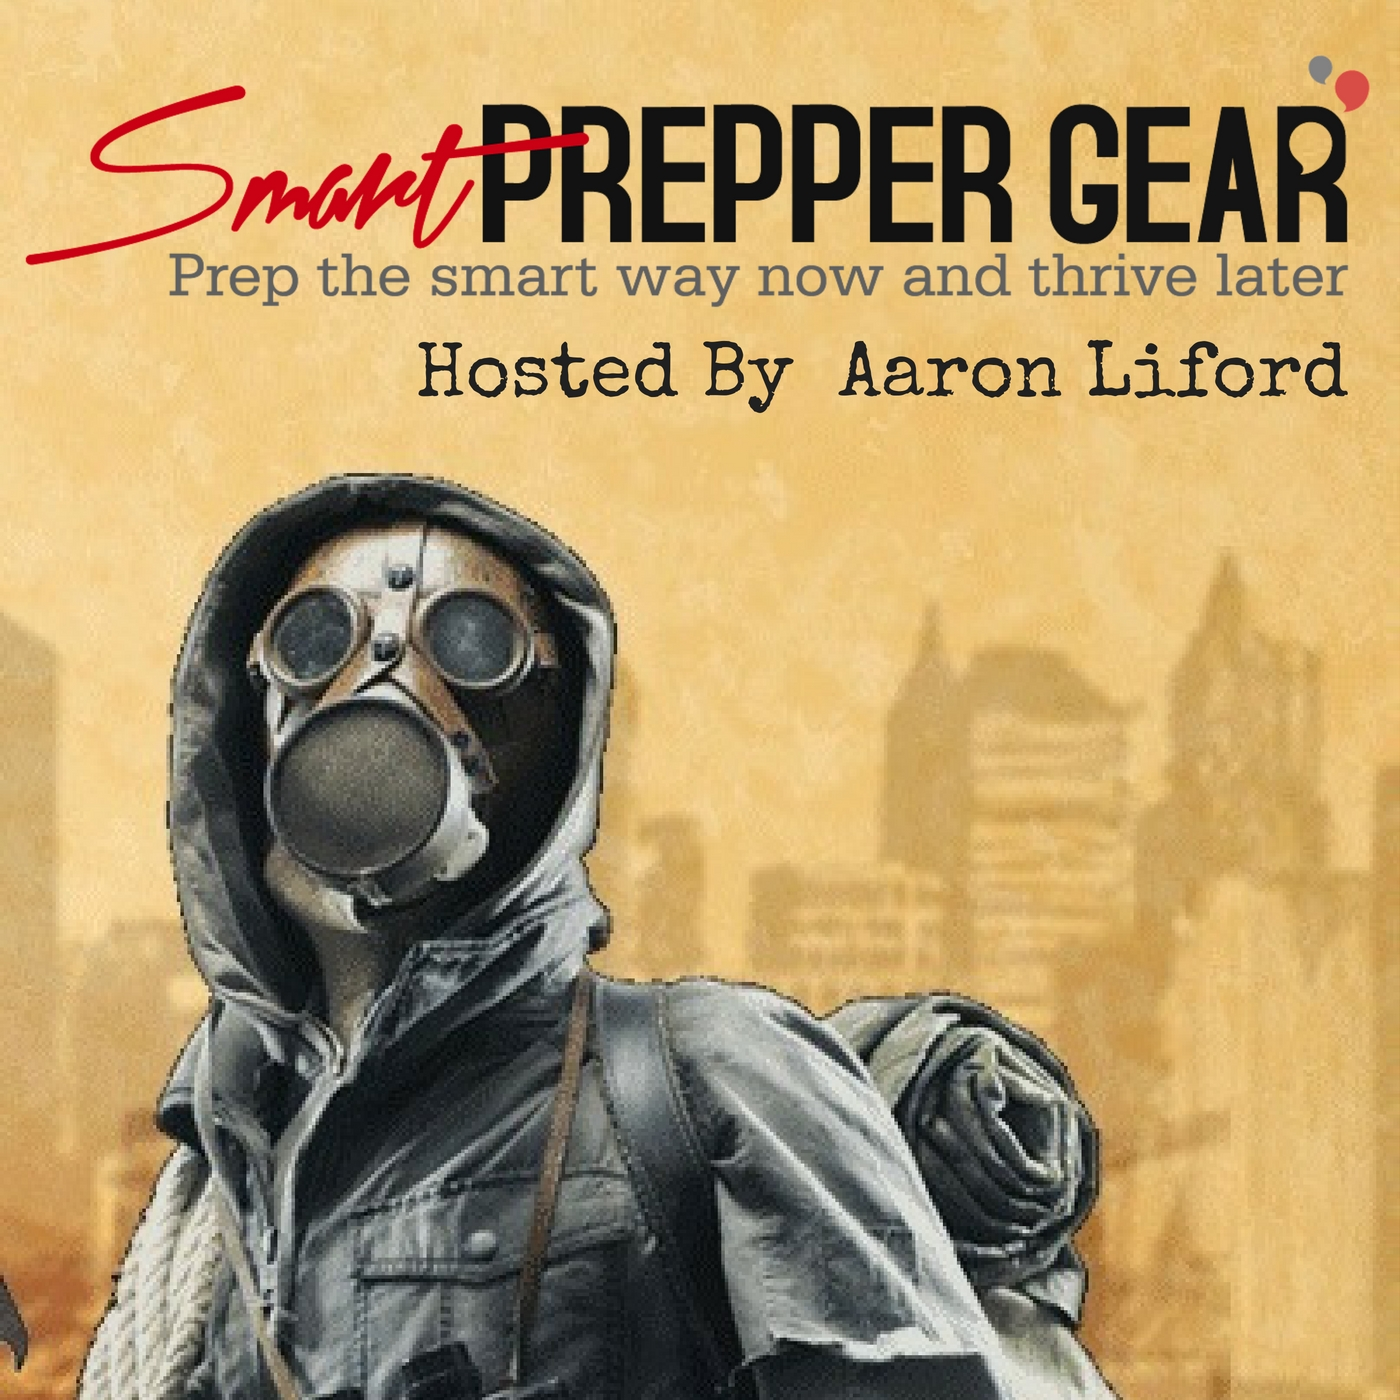 Smart Prepper Gear Podcast: Prepping, Survival, and Gear show art